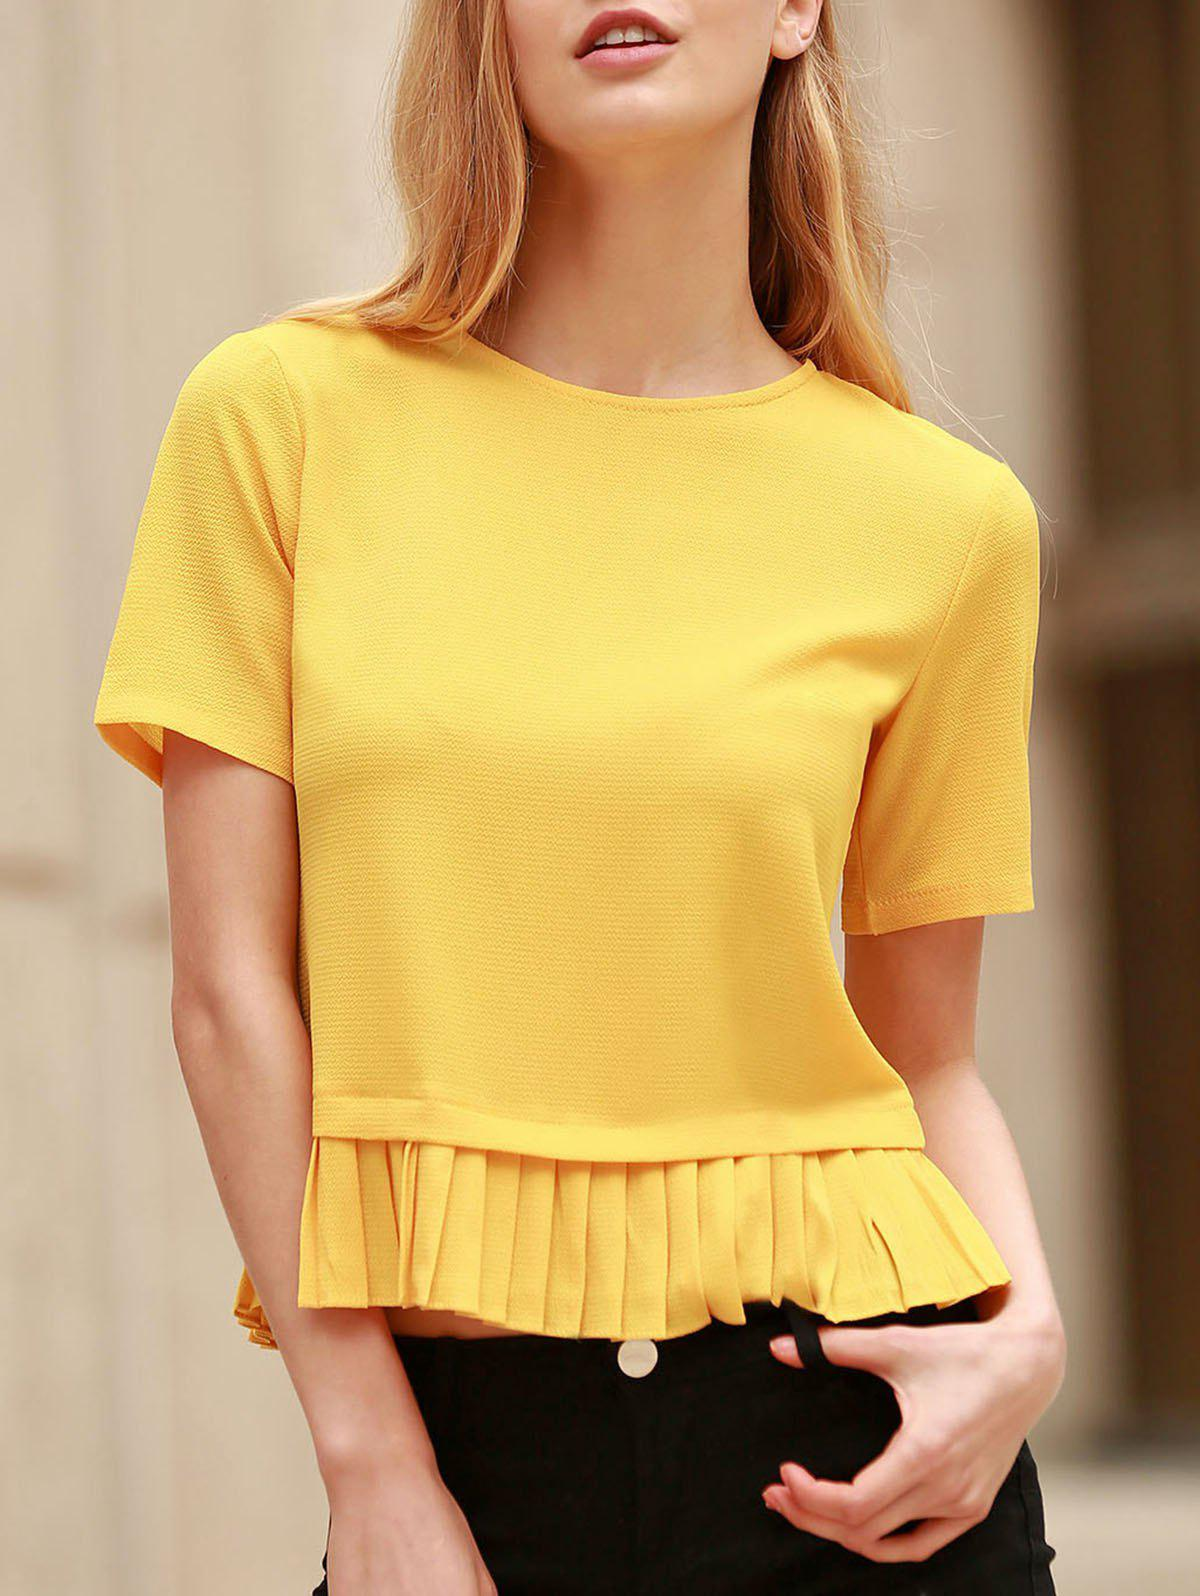 Stylish Short Sleeve Pleated Hem Yellow Pullover T-Shirt For Women - YELLOW S